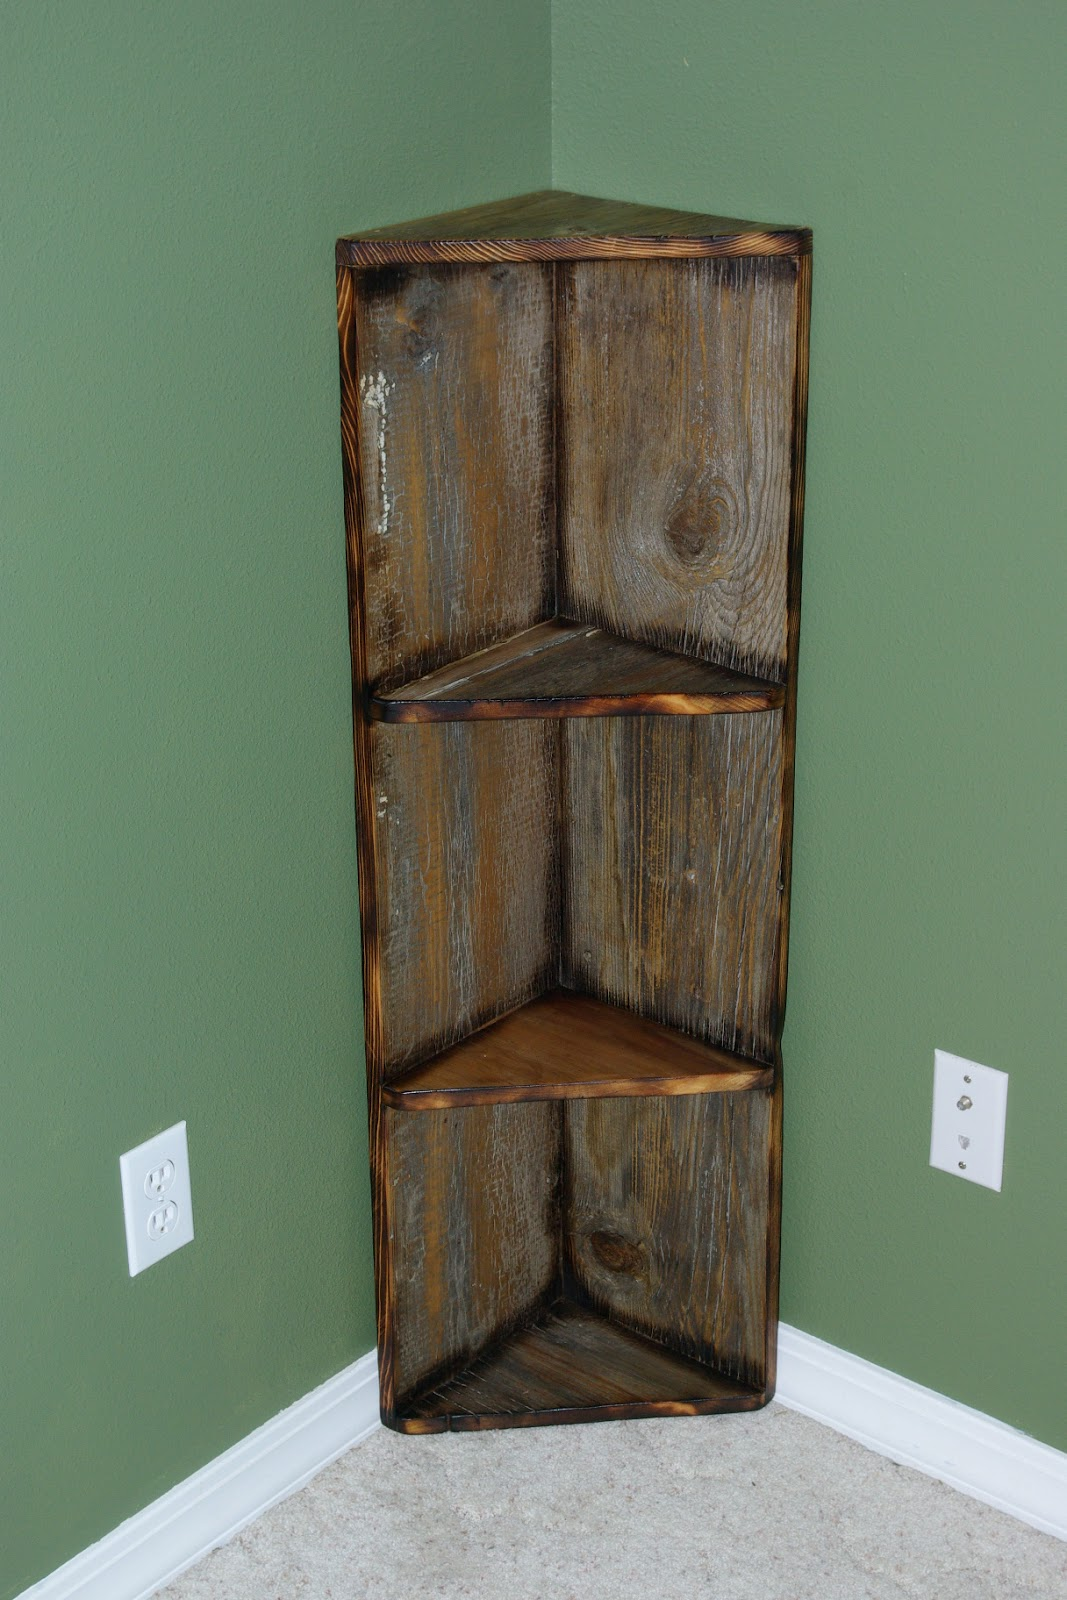 ... reclaimed rustics barn wood corner shelf 1500 x 1125 jpeg 214kb wood